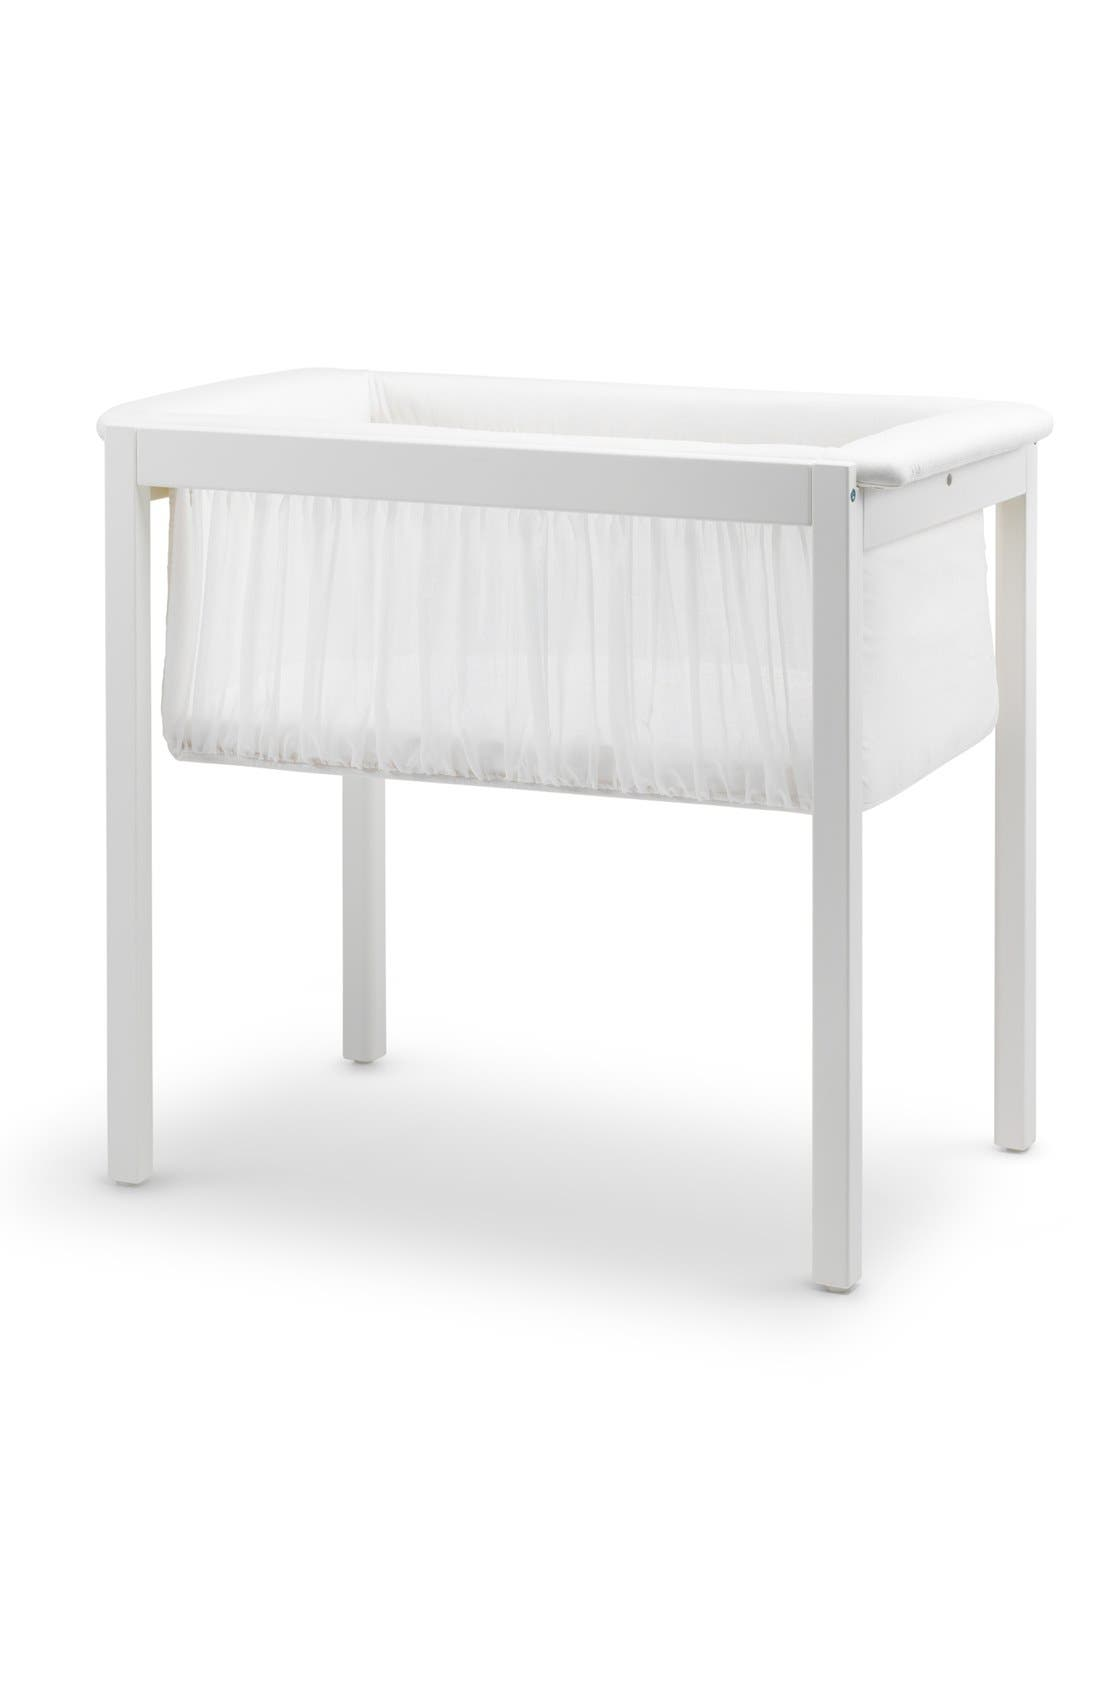 'Home<sup>™</sup>' Cradle,                         Main,                         color, White